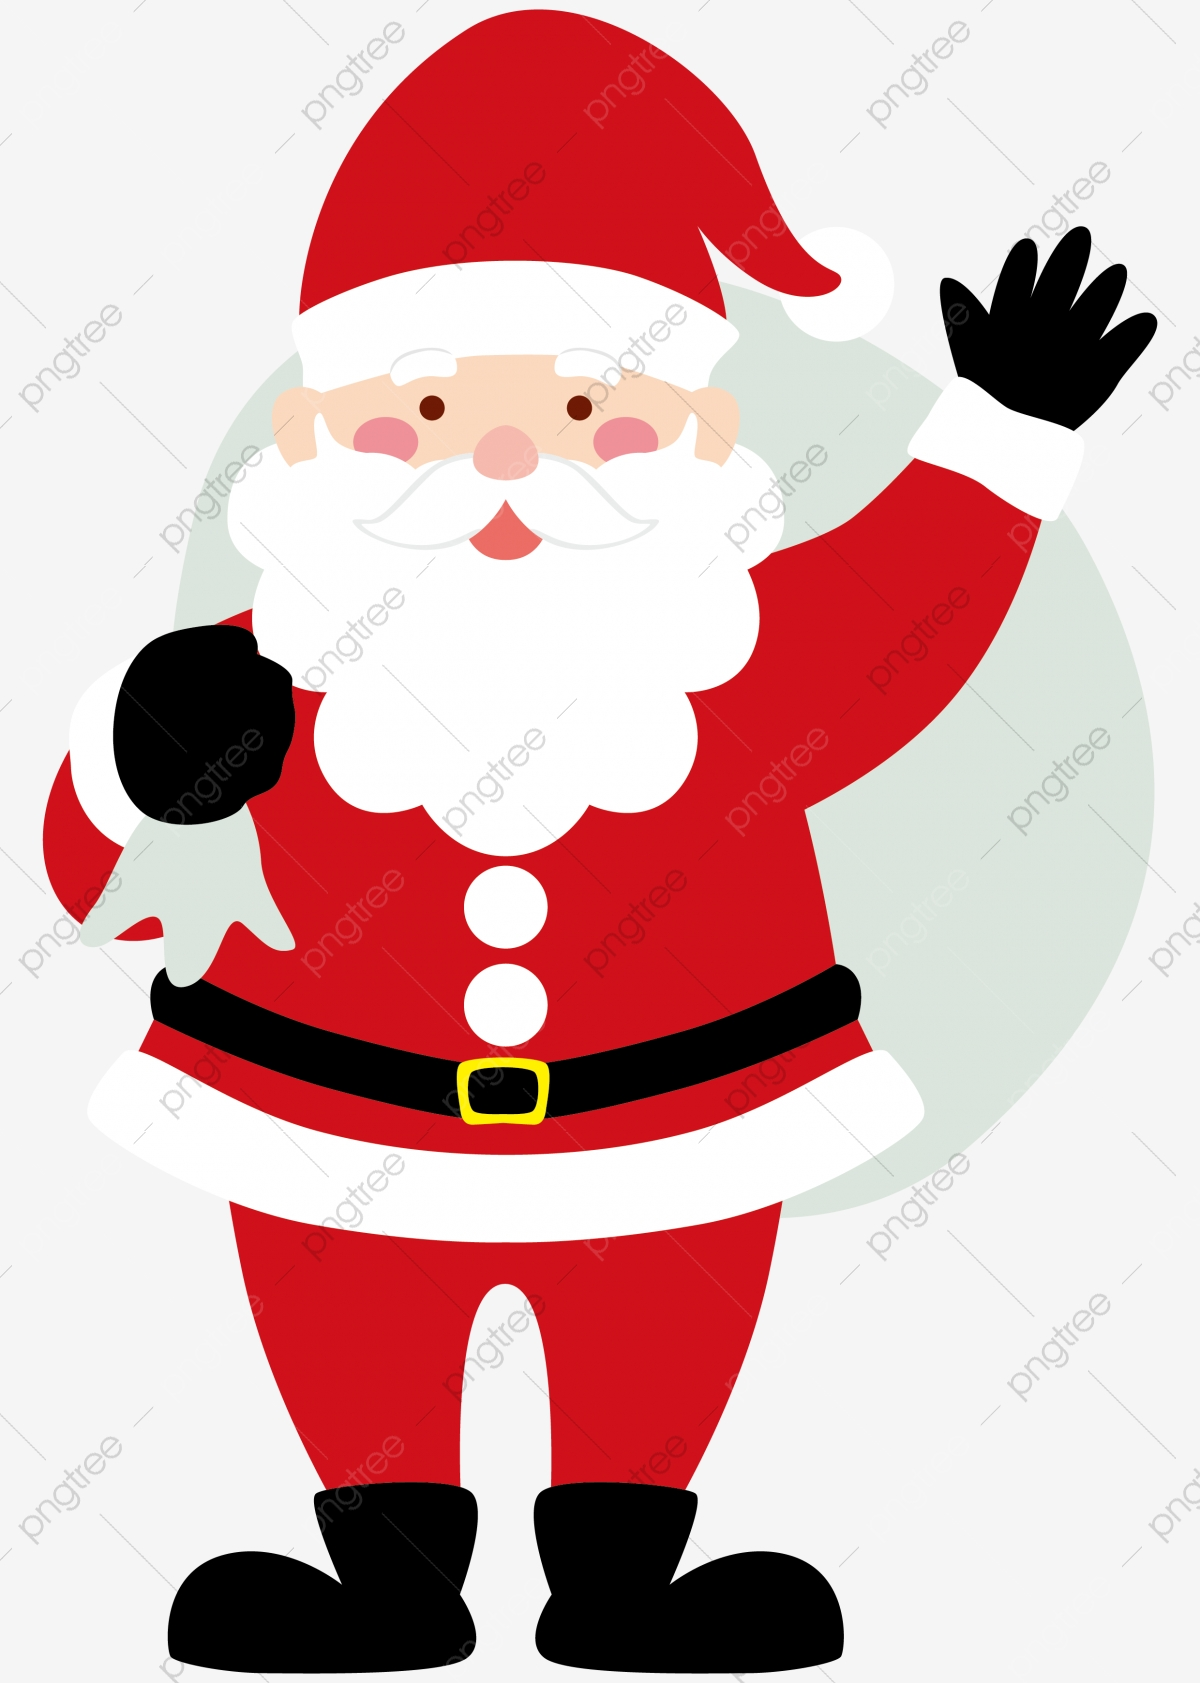 celebrate christmas santa claus illustration western festival happy festival png and vector with transparent background for free download https pngtree com freepng celebrate christmas santa claus illustration 3841239 html